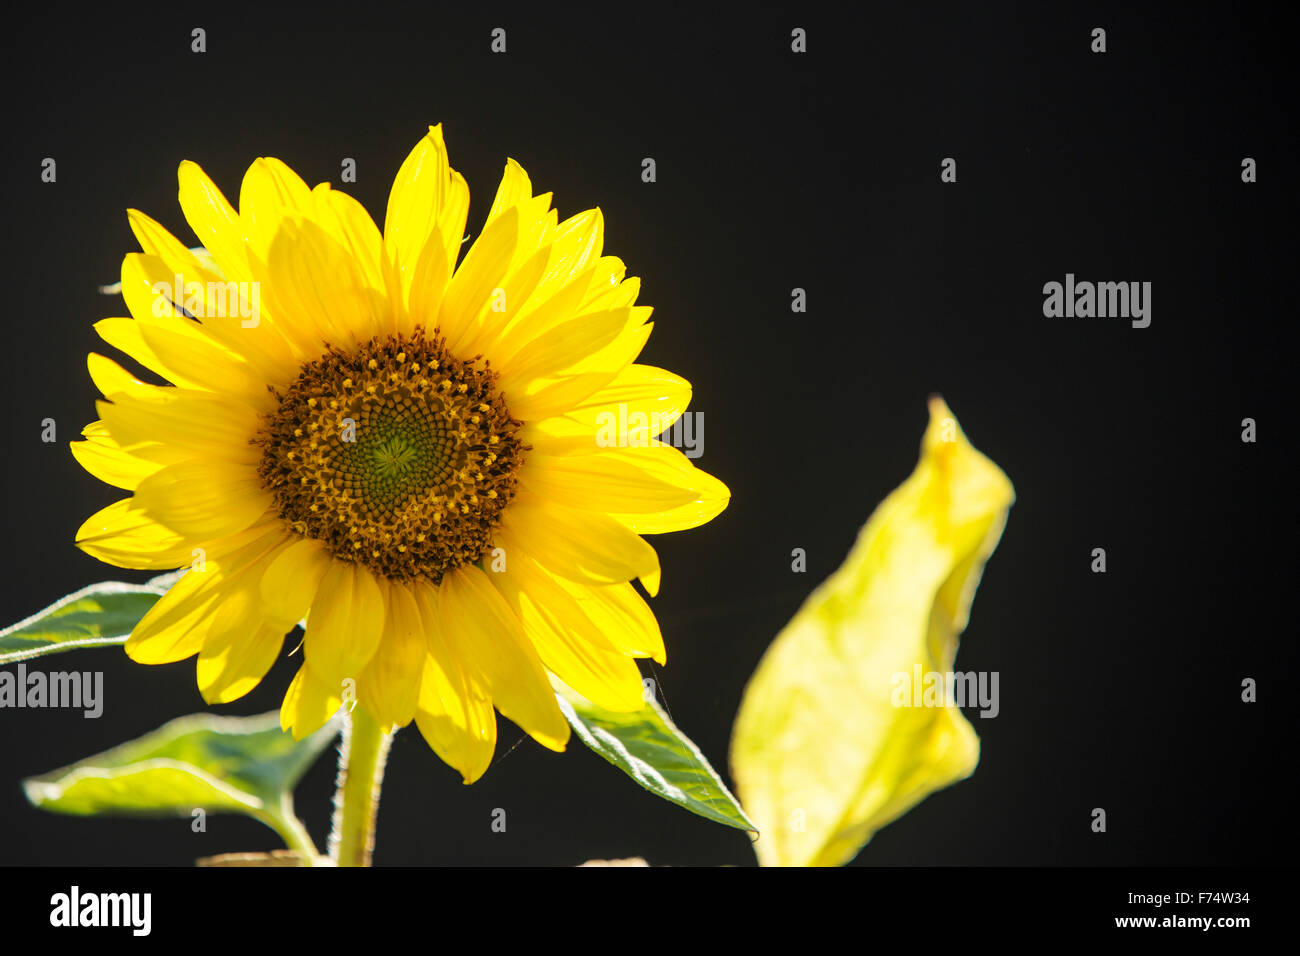 A sunflower backlit by the sun. Stock Photo